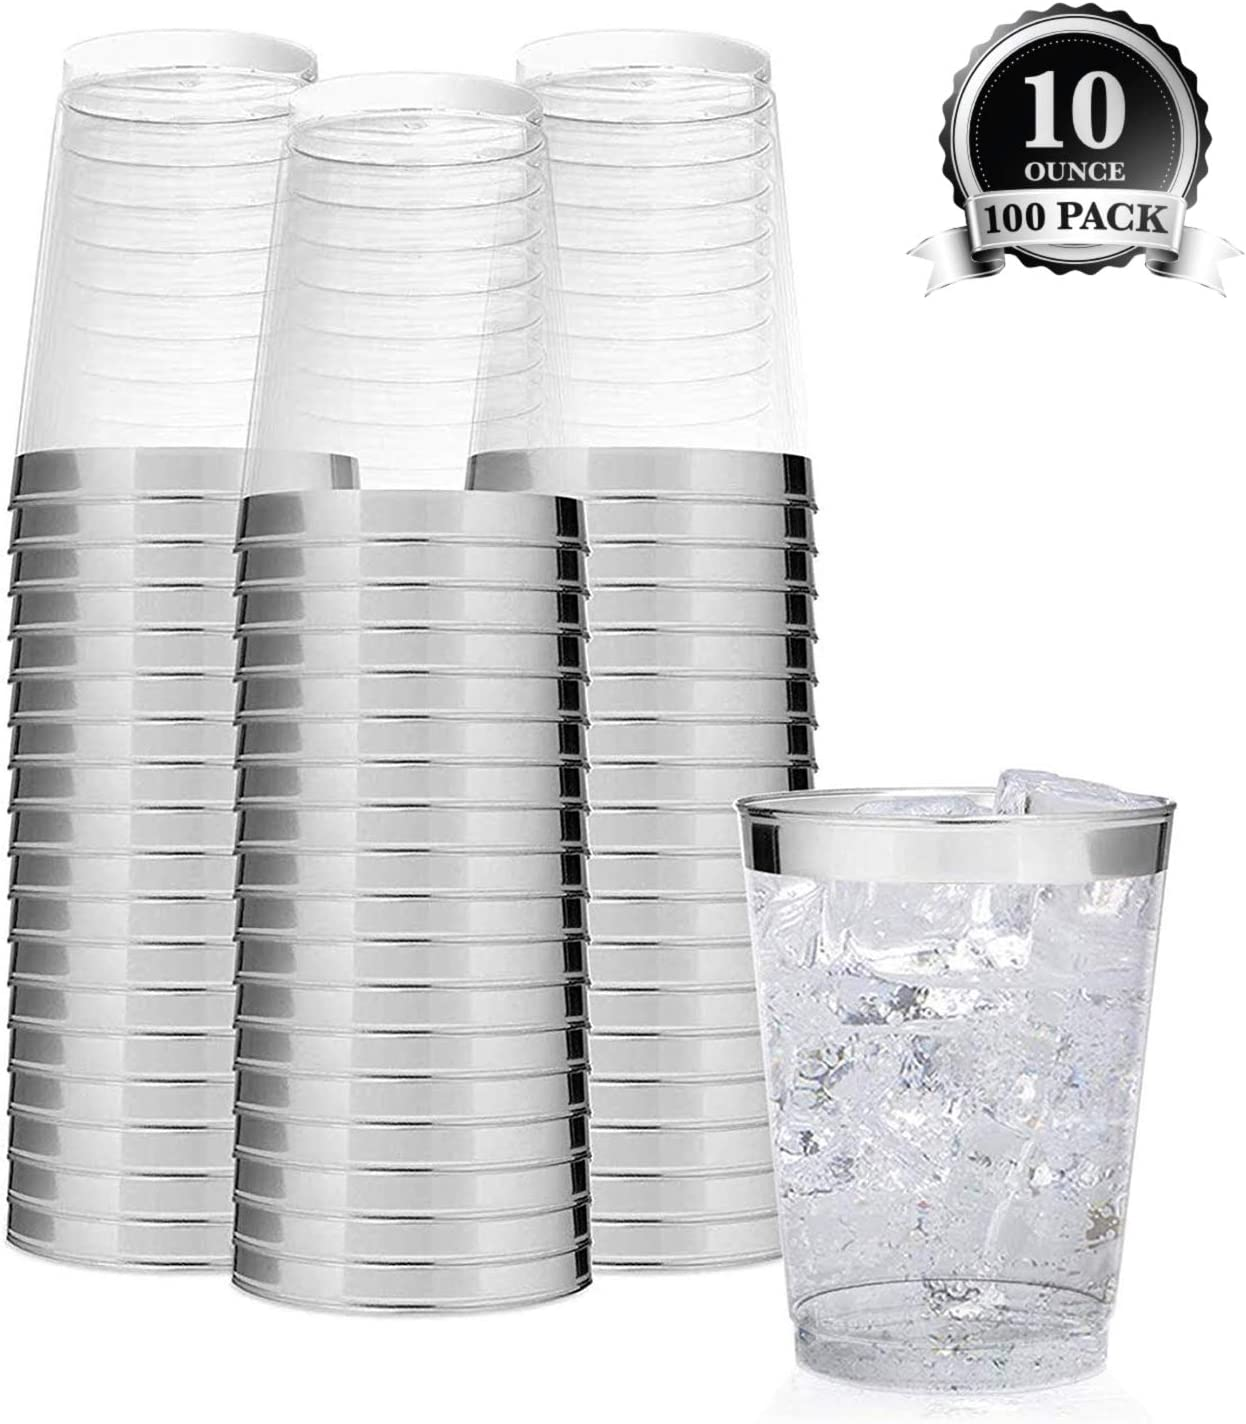 Elegant Silver Rimmed 10 Oz Clear Plastic Cups (100 Pack) Fancy Disposable Party Cups - Silver Plastic Tumblers for Weddings, Parties and Everyday Use